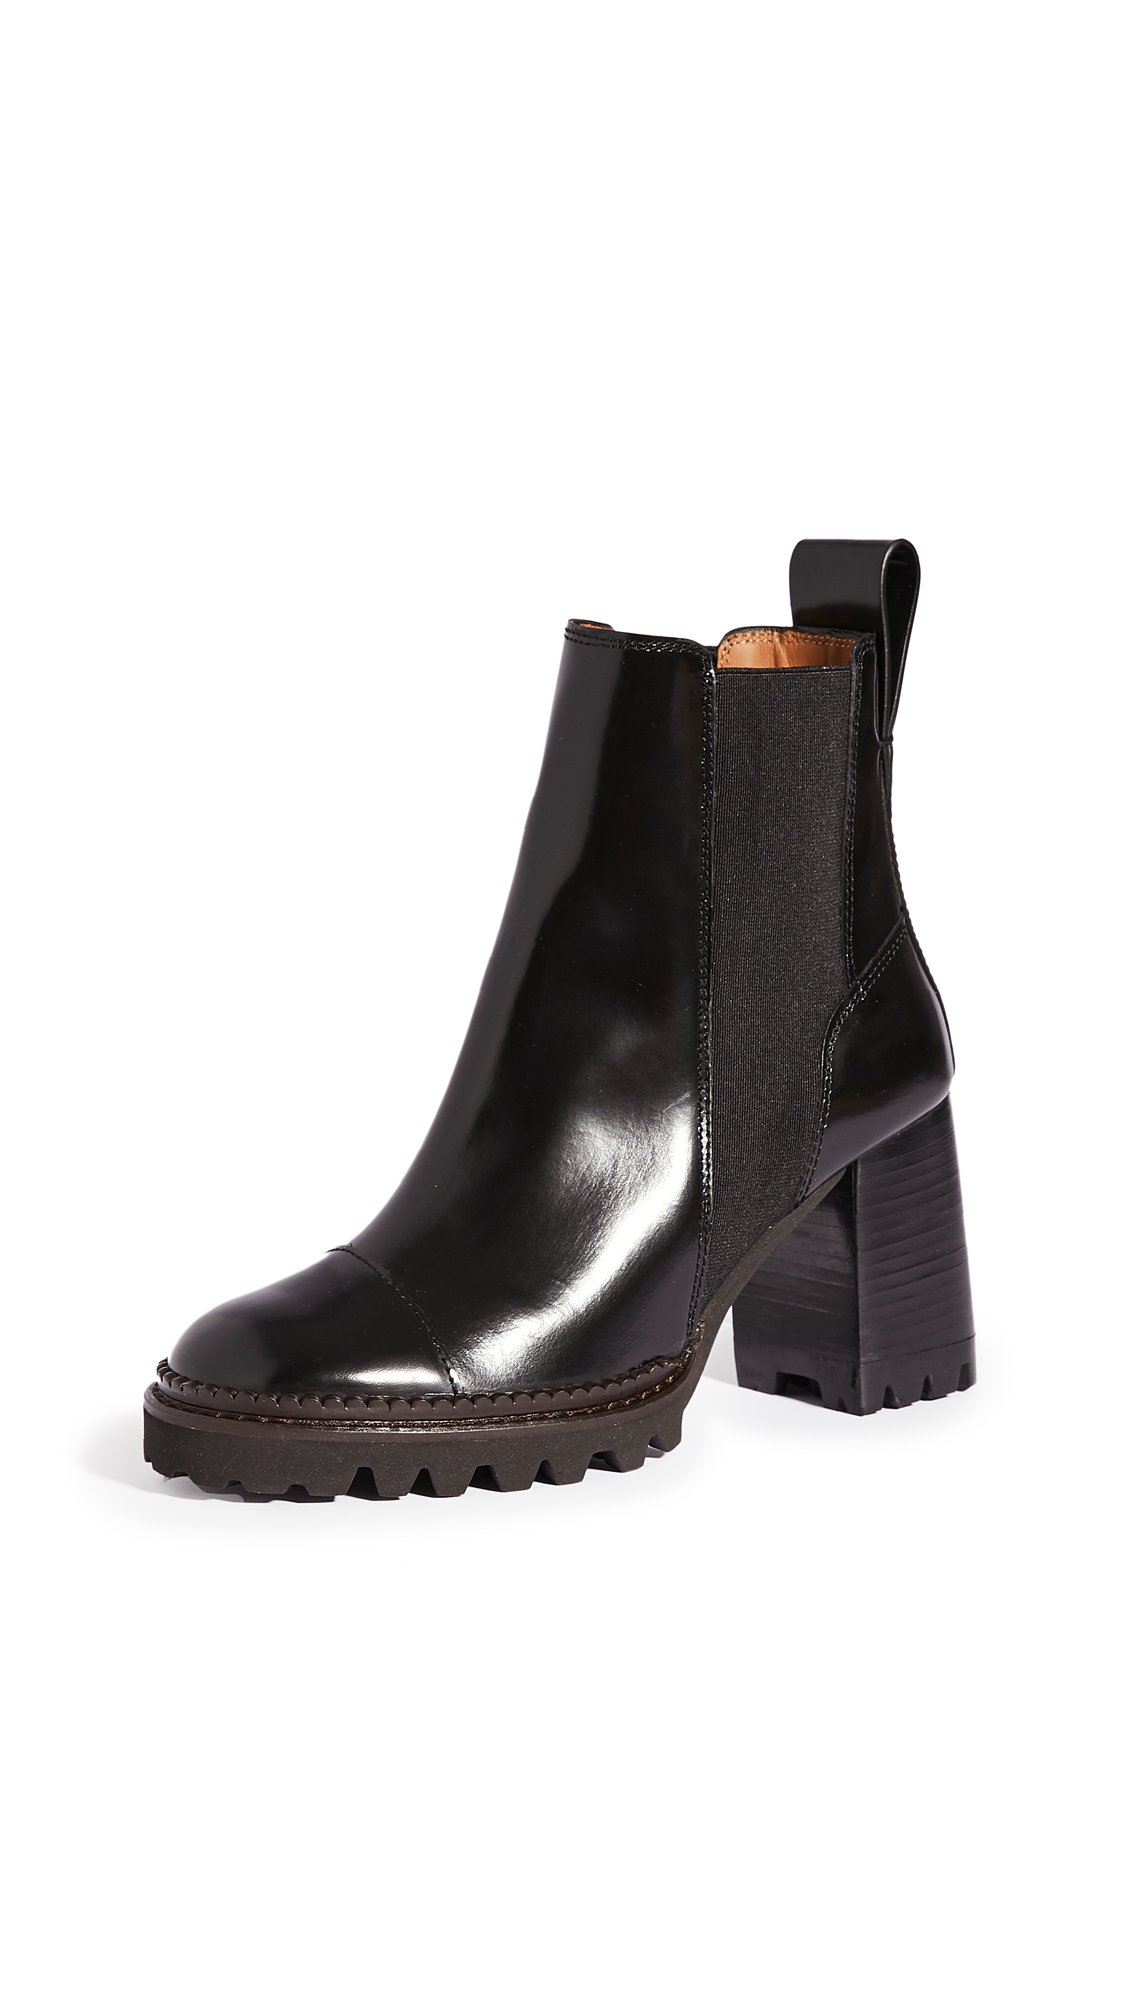 See by Chloe Chels Mall Lug Sole Boots